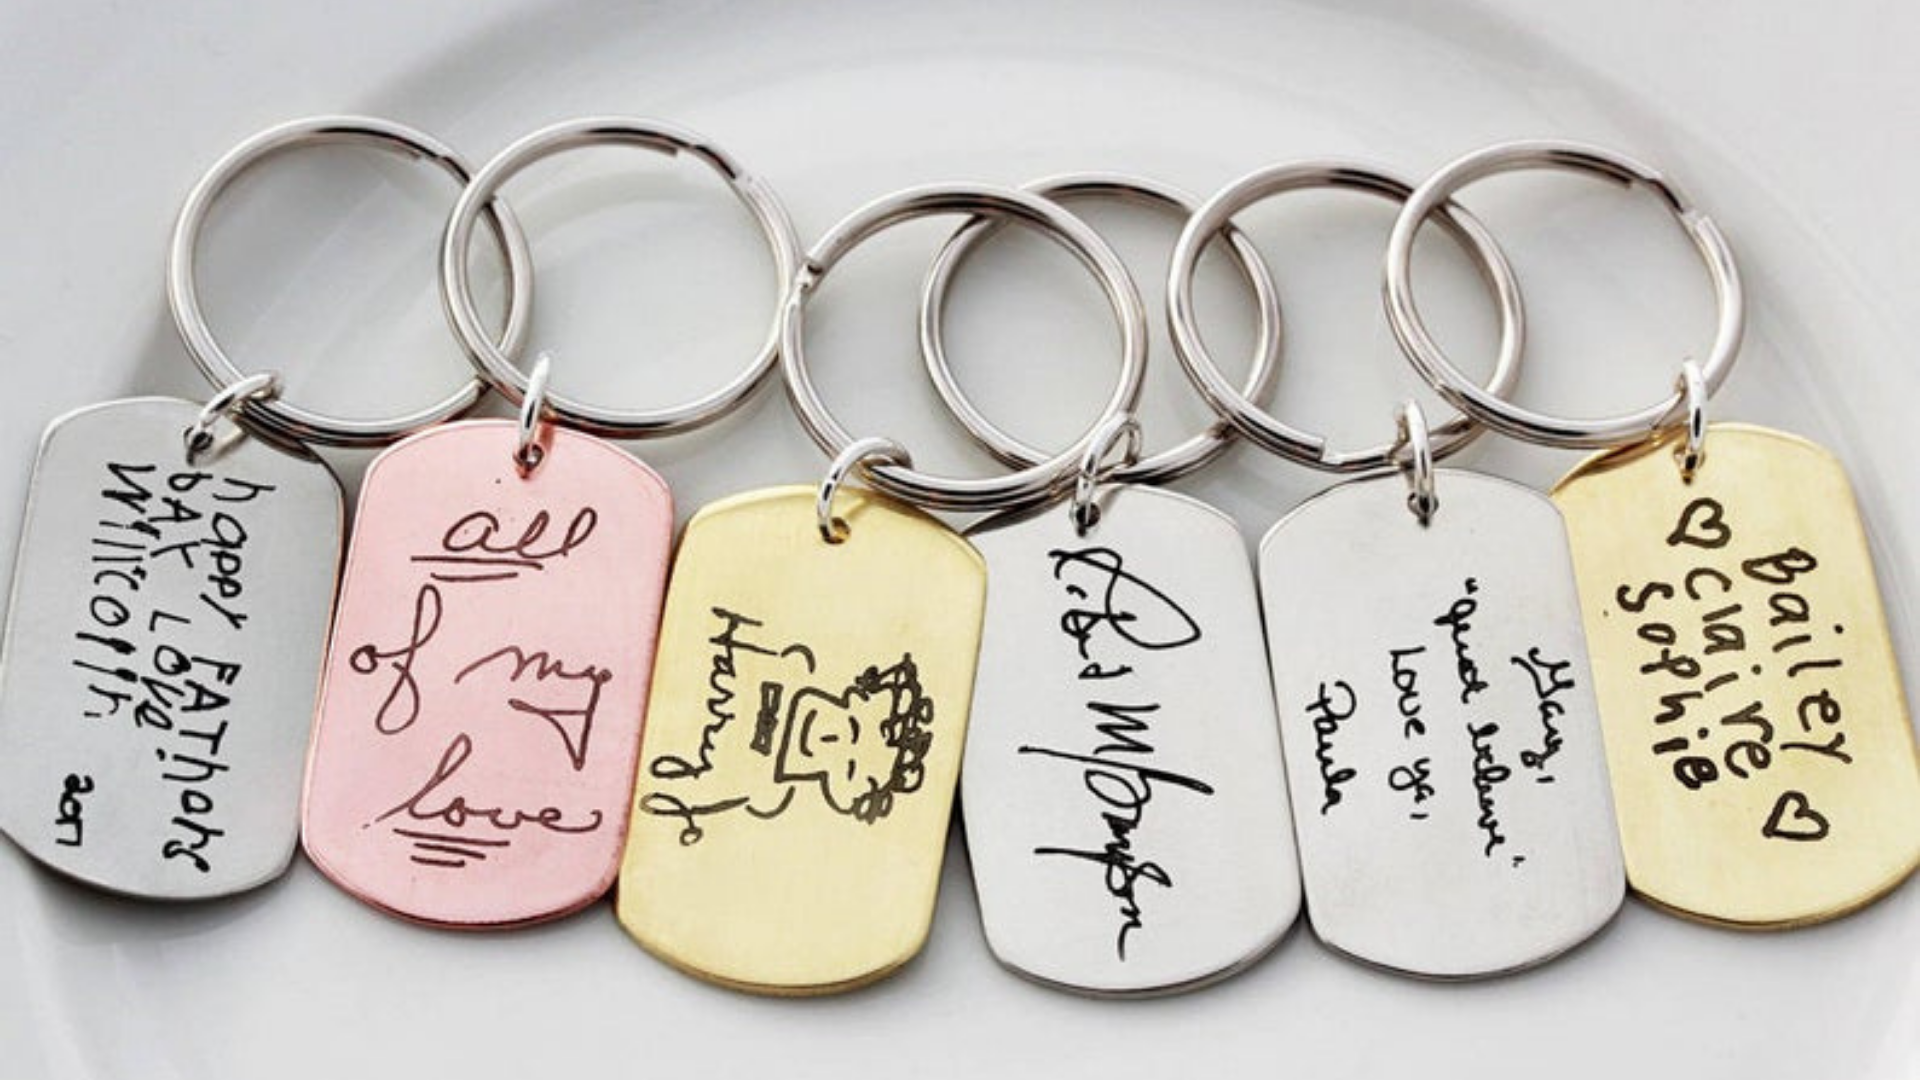 Couples Keychain Best Friends His And Her Keychain Custom Keychain Personalized Keychain Set Engraved Keychain Personalized Gift